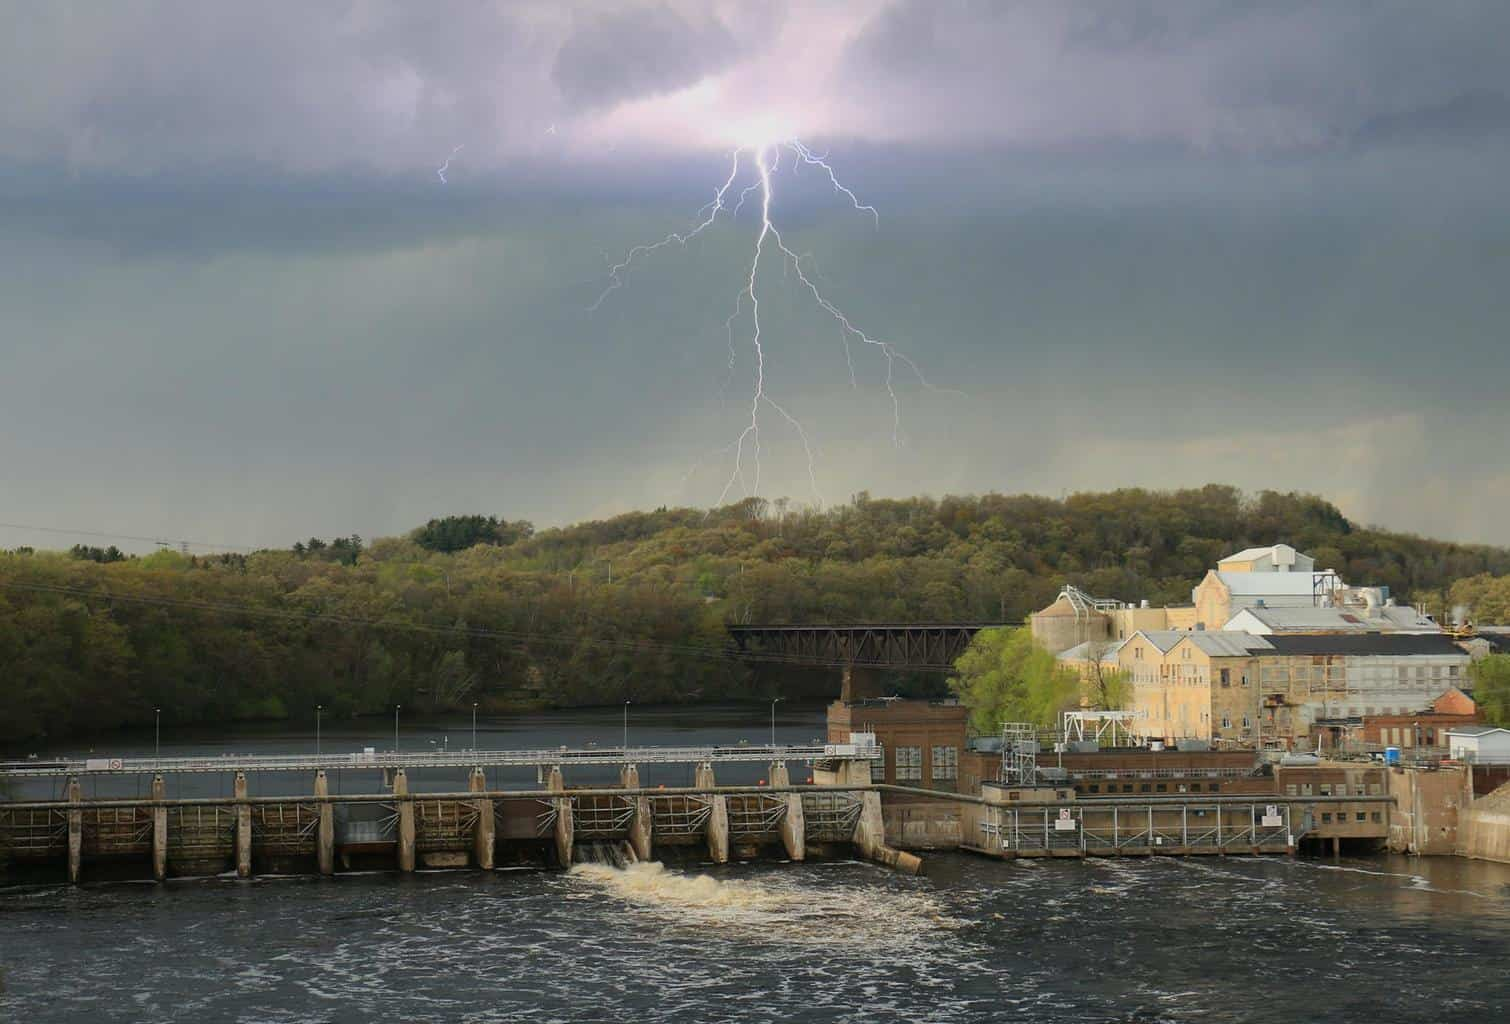 A little storm this afternoon in Eau Claire,WI.....